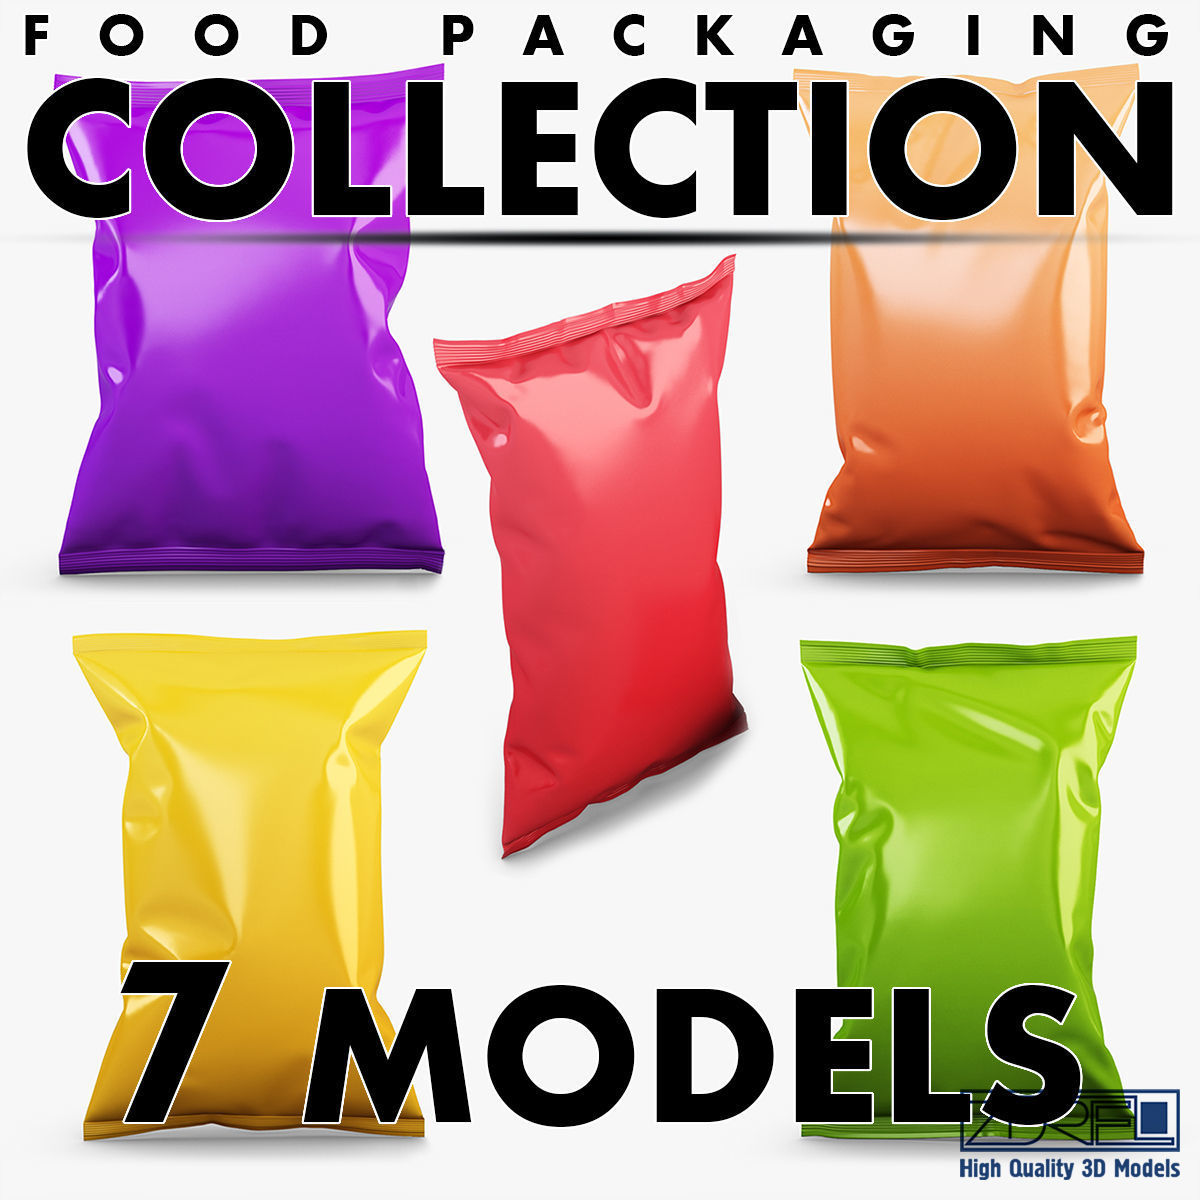 Food packaging collection volume 1